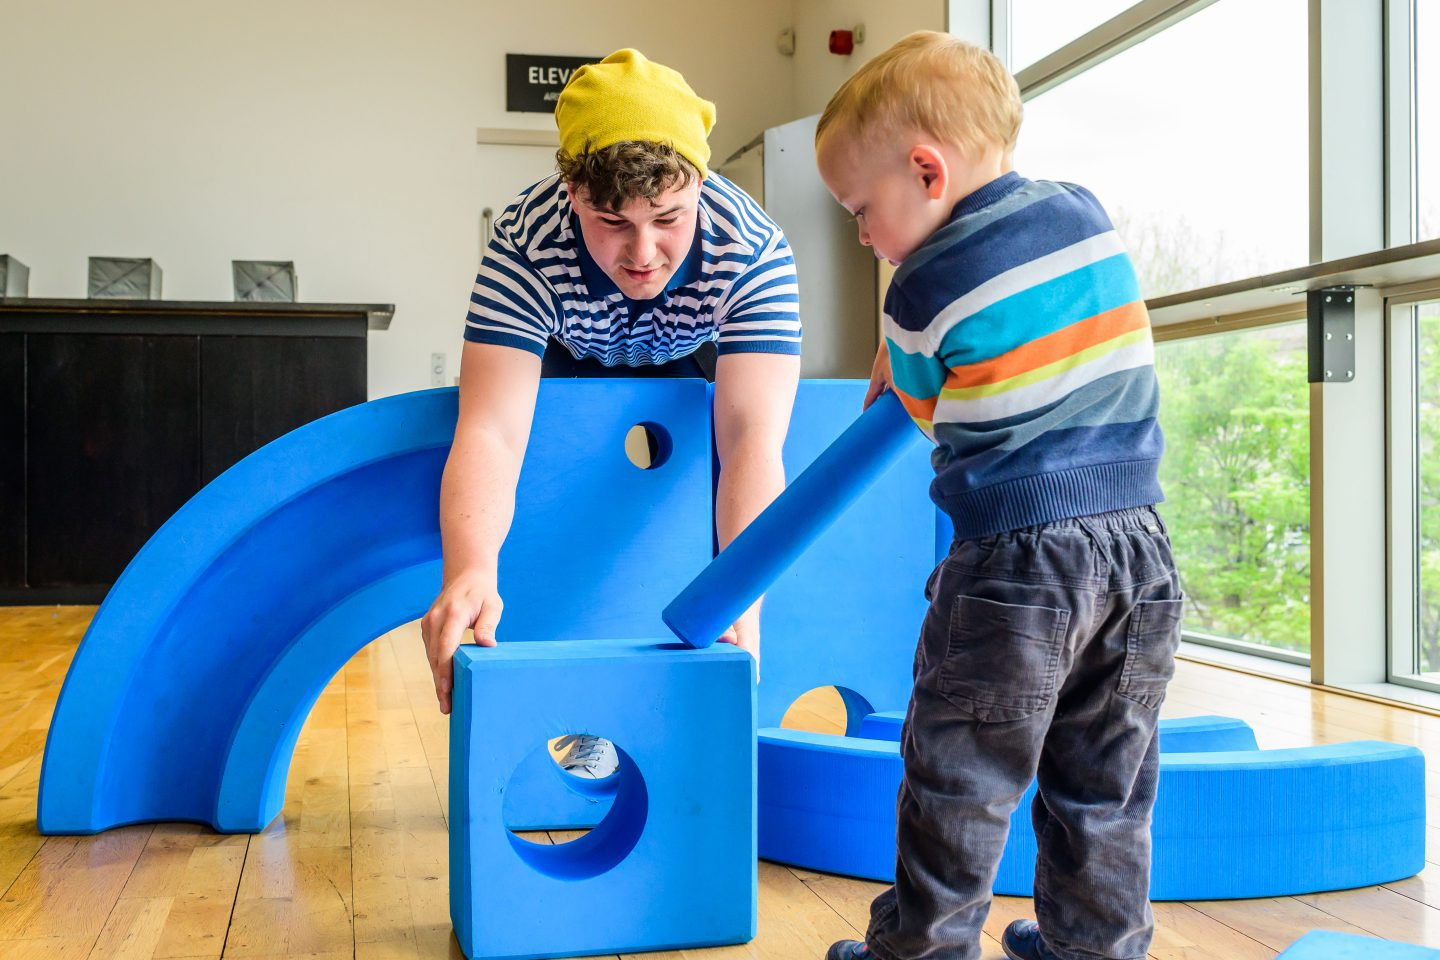 Blue - a performer holds a blue foam block whilst a child connects a blue foam pole into the block